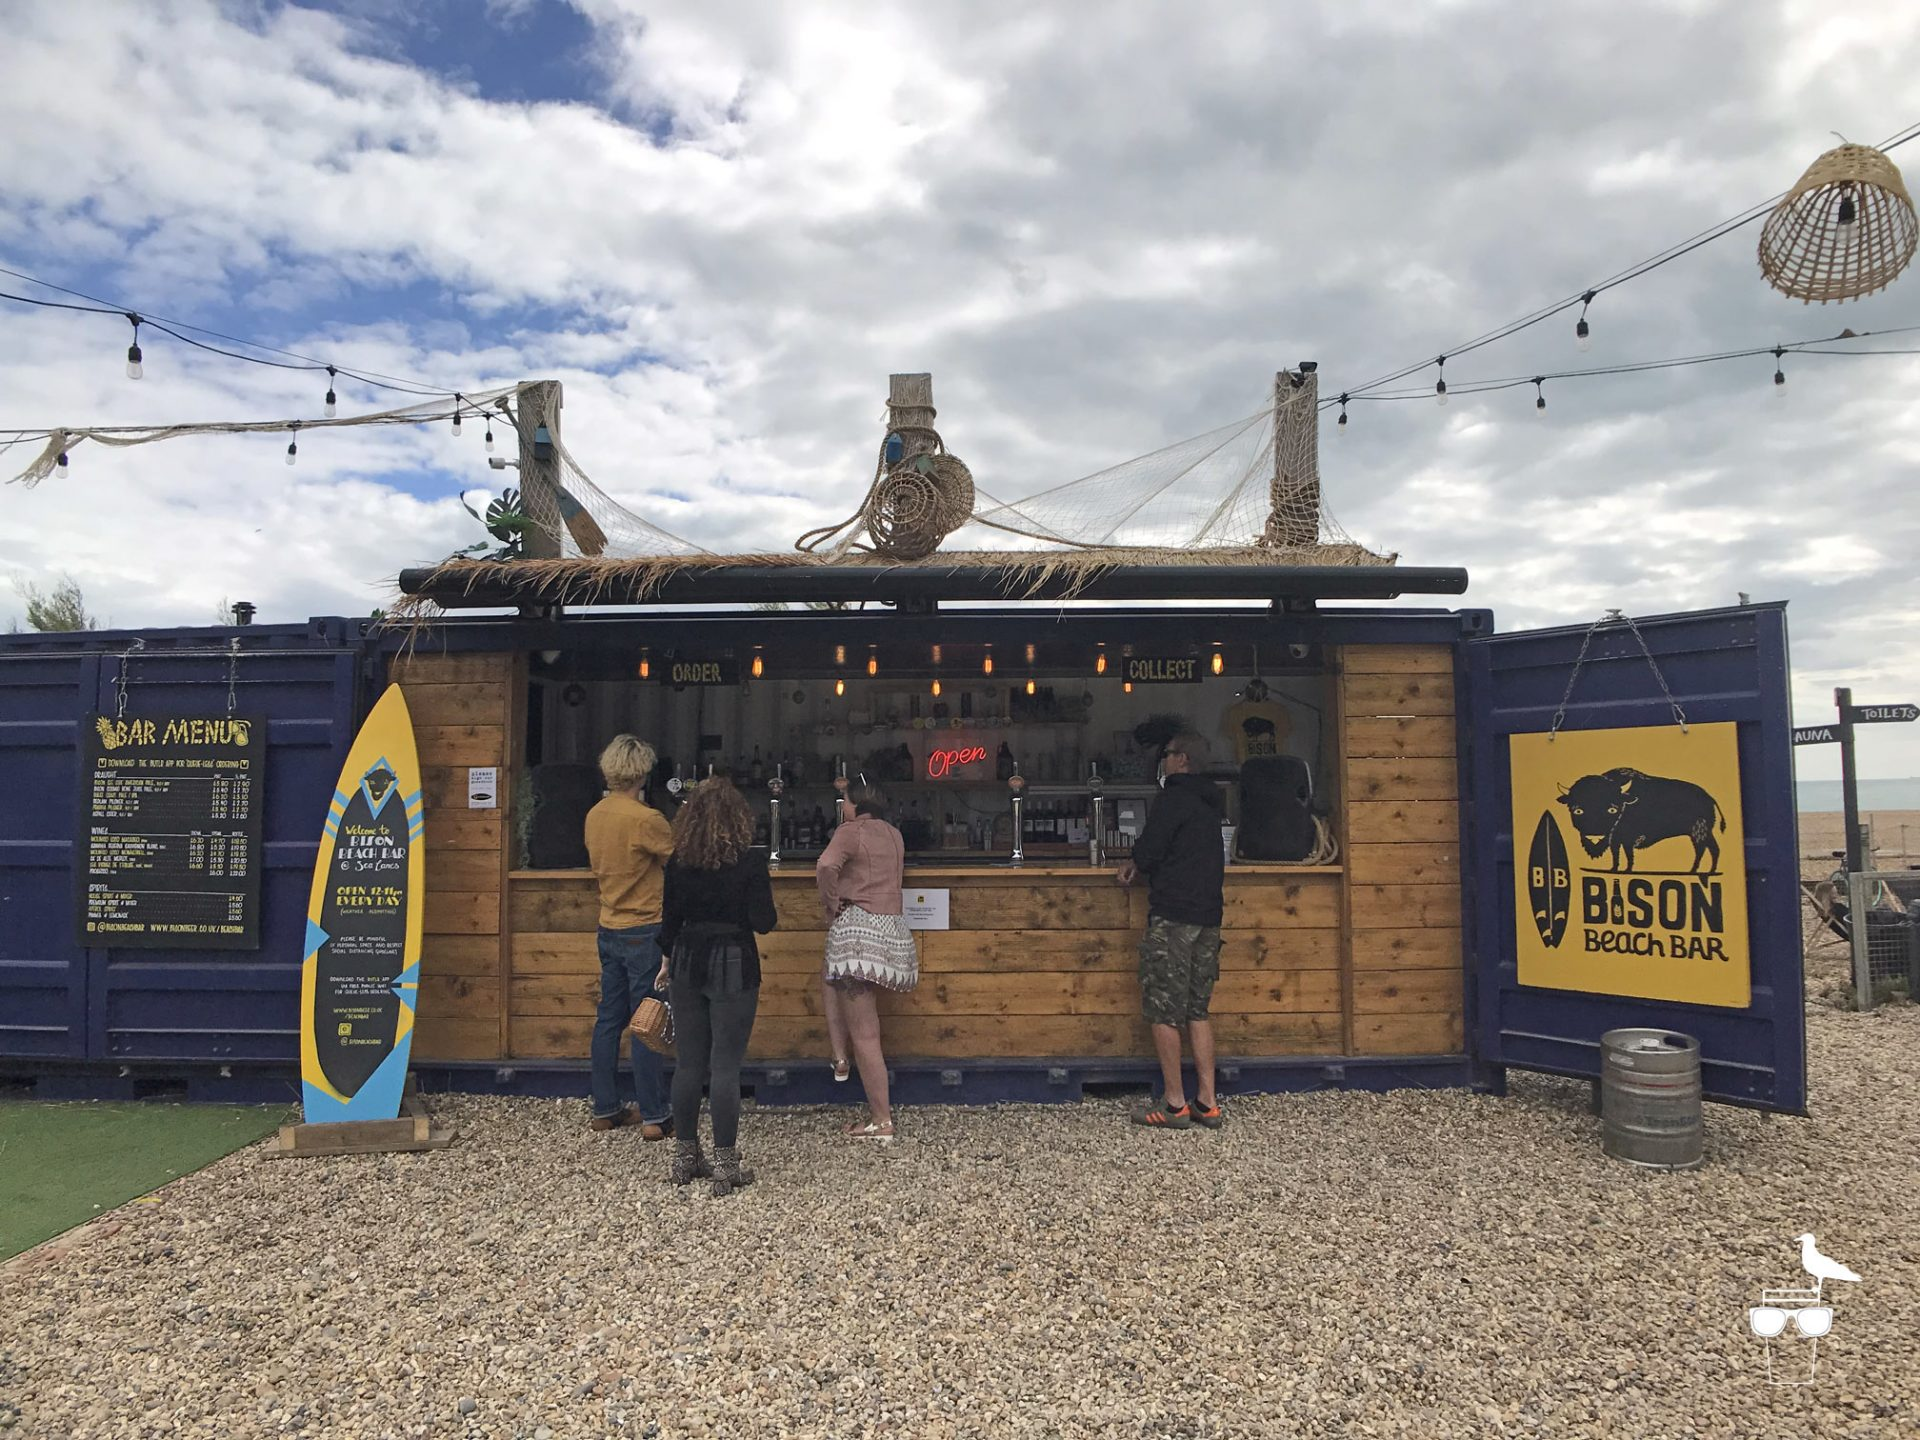 bison-beach-bar-brighton-customers-being-served-at-bar